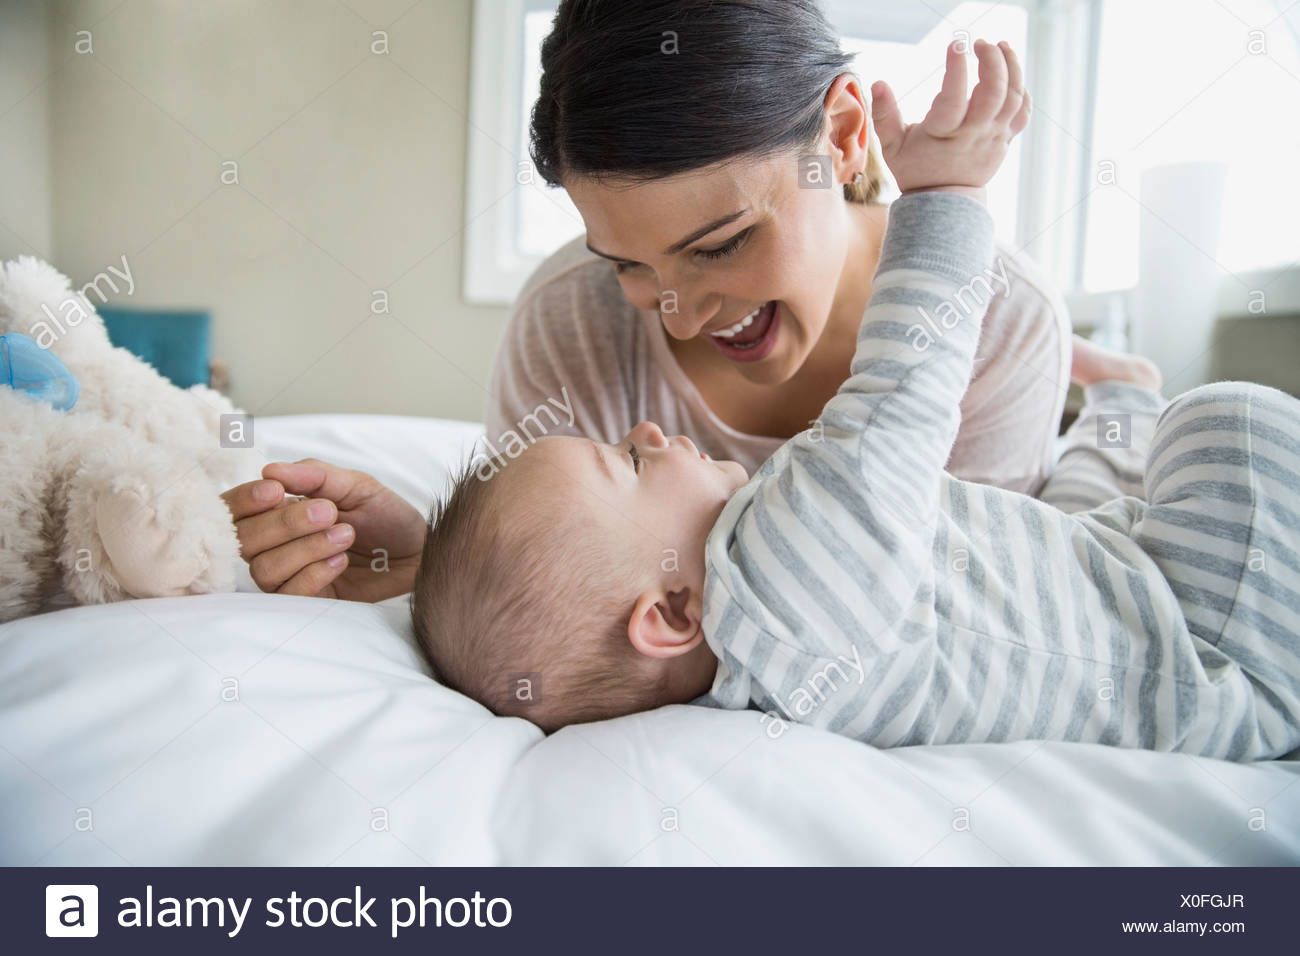 Mother and baby laughing on bed - Stock Image